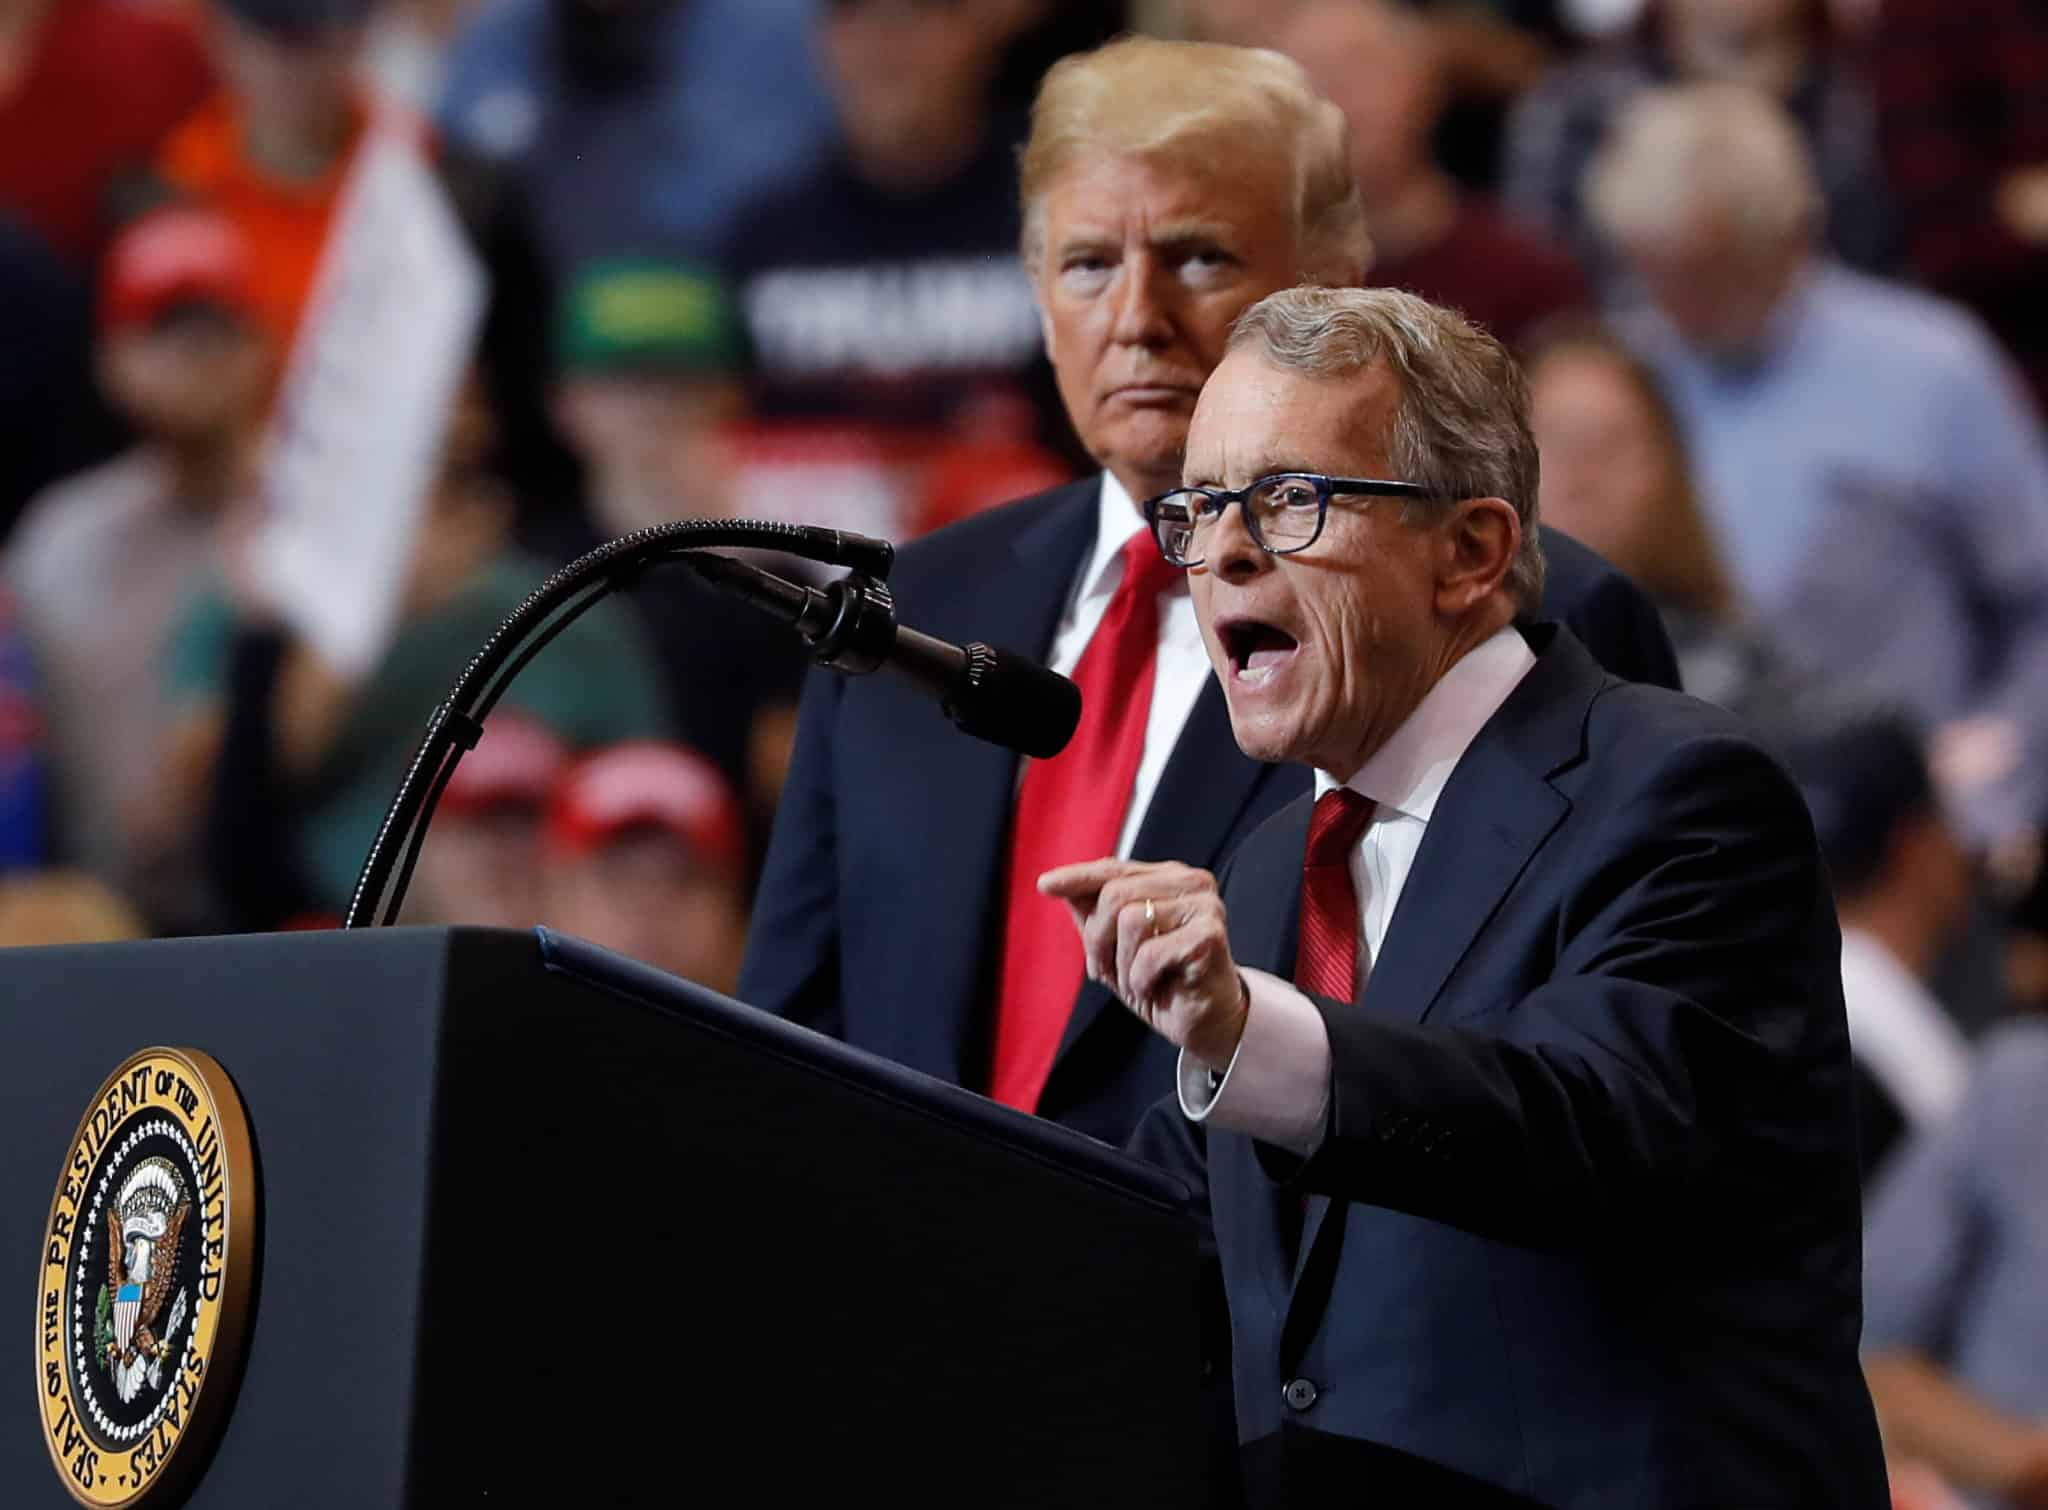 2020 08 06T170005Z 1 LYNXNPEG751ET RTROPTP 4 USA TRUMP scaled Ohio Governor Booed at Trump Rally in His State